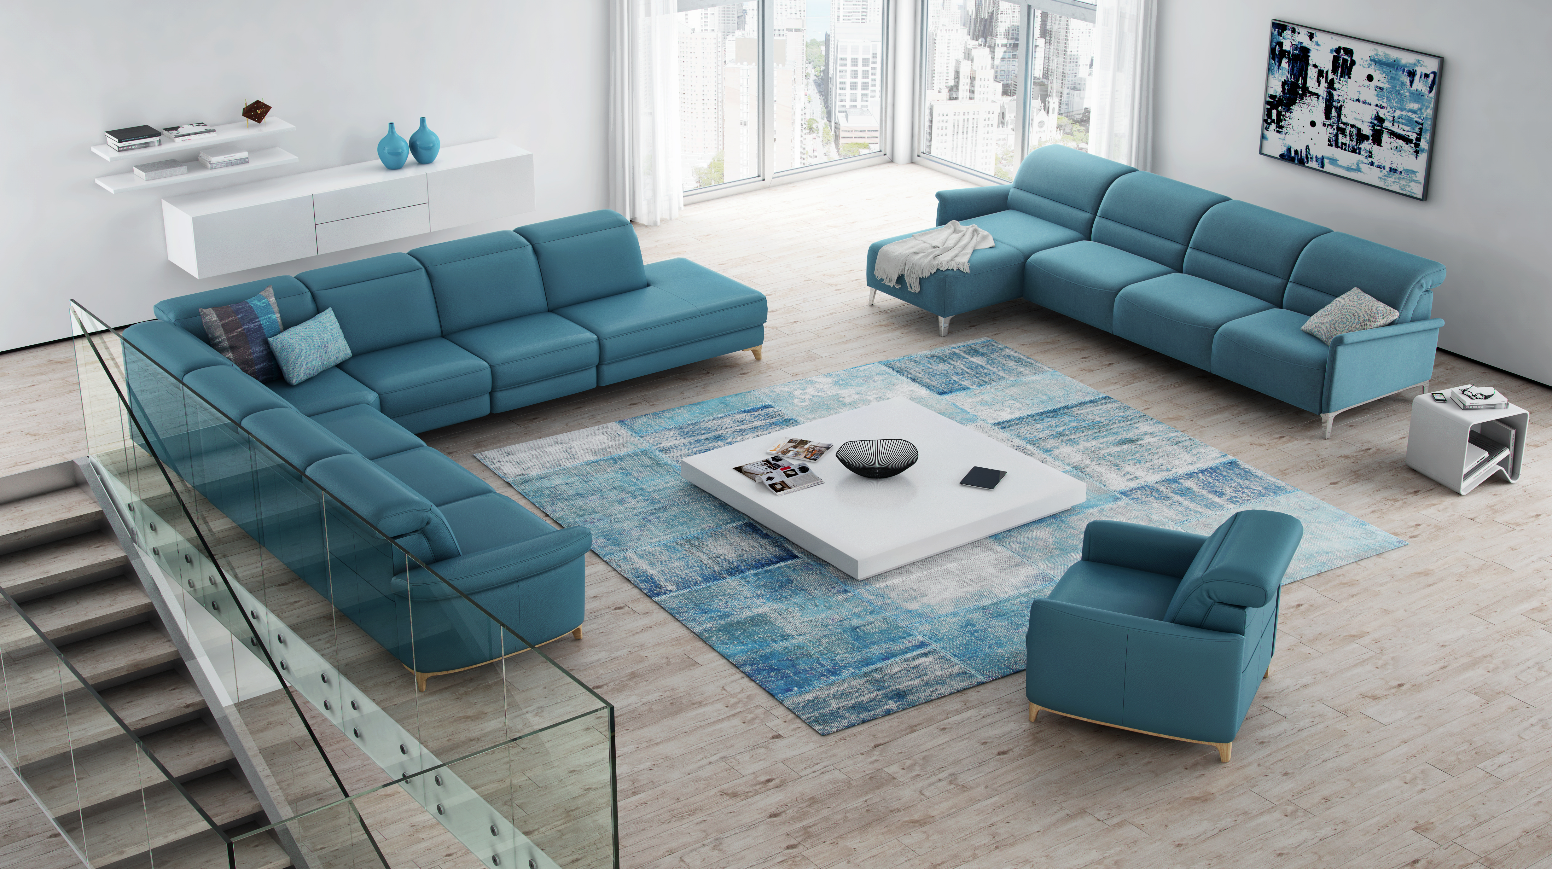 Reclining Sofa Modular luxury sofa Bellona for the ultimate in fort featuring ROM us sizing concept electric recliner and headrest seat and lumbar heating